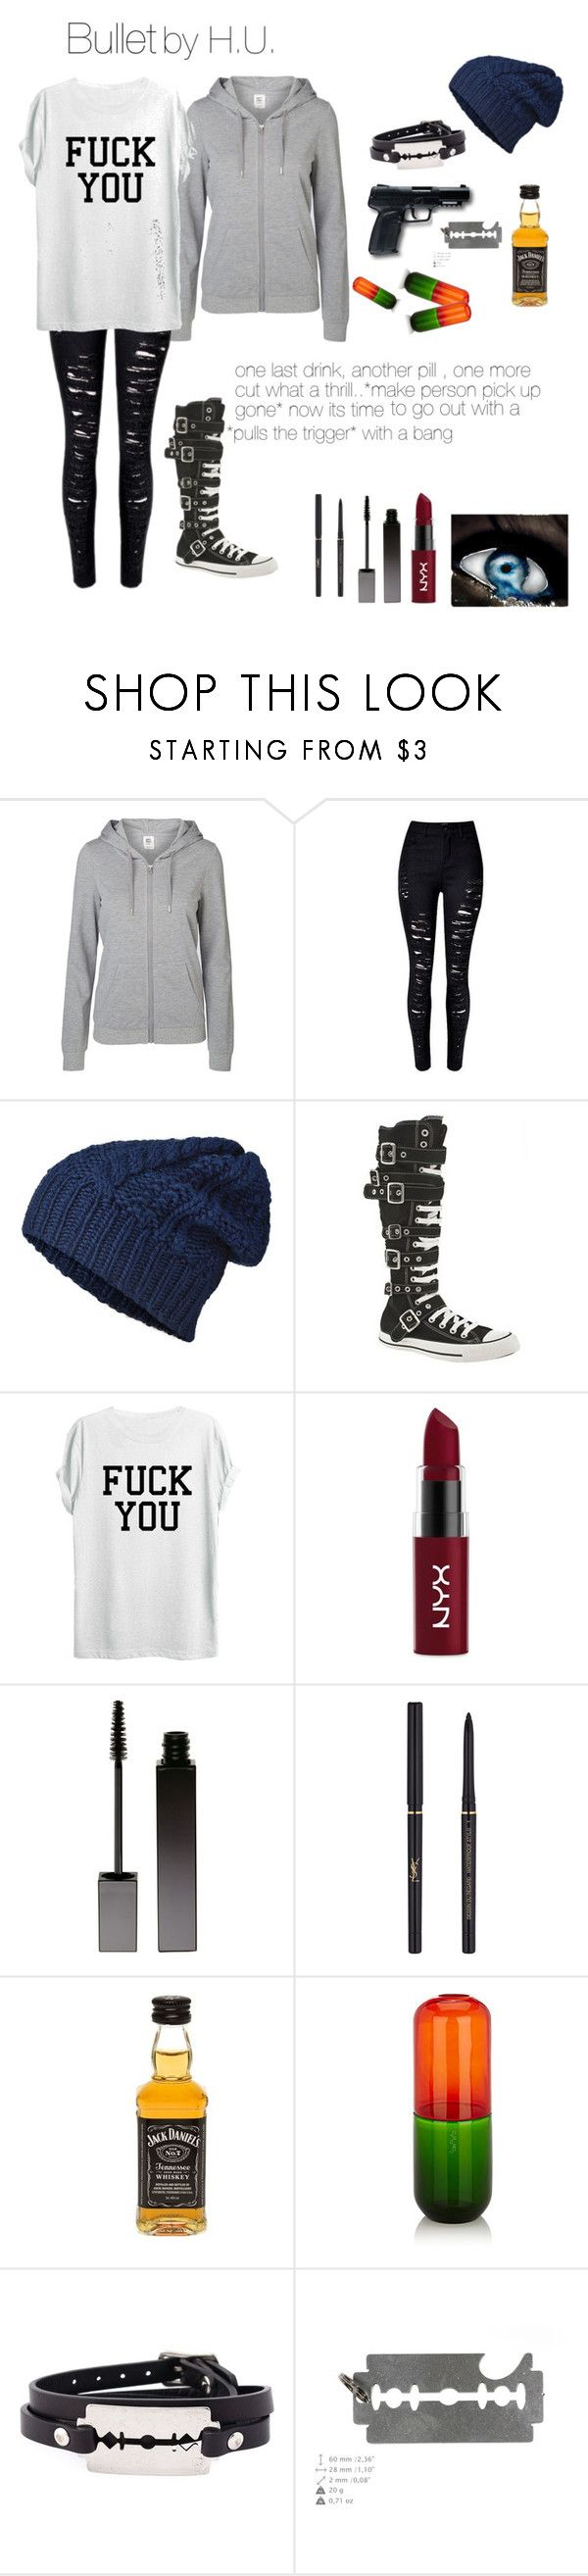 """35f8d582dc1da77a1816d651c34f7705  bullets creepypasta - """"creepypasta oc : Bullet"""" by chaoticduck ❤ liked on Polyvore featuring Vero Mo..."""